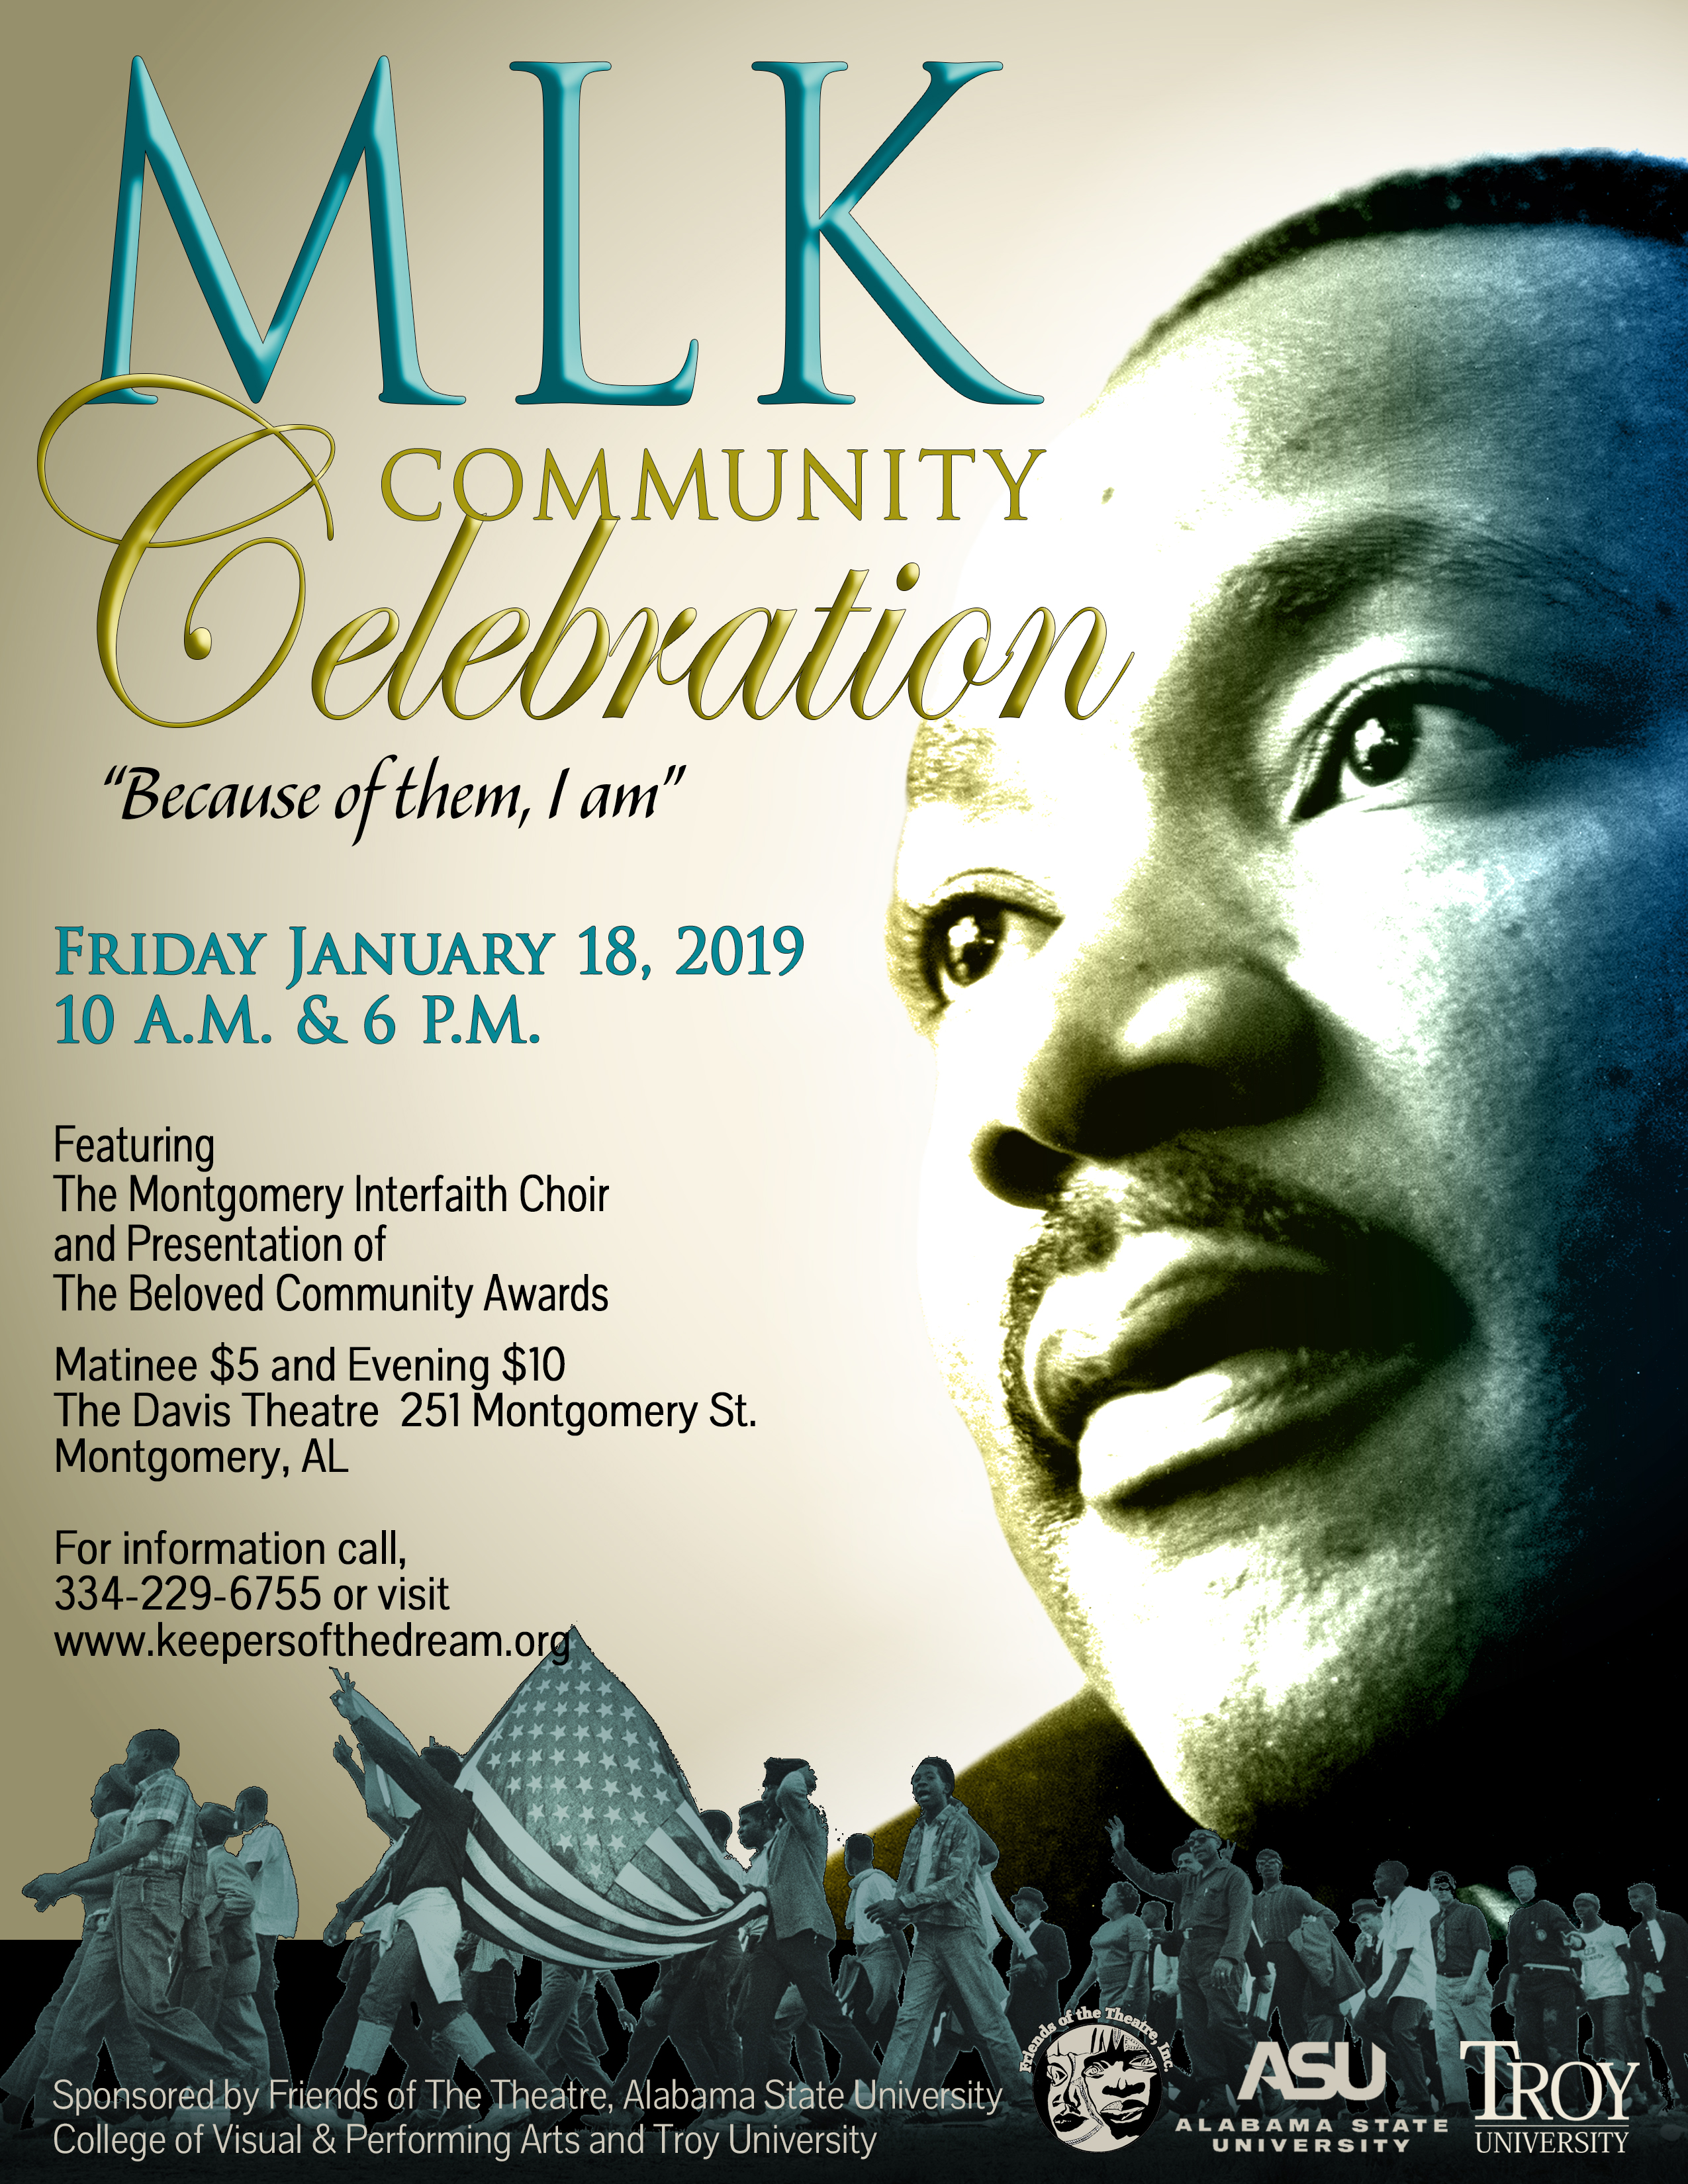 5th Annual Martin Luther King Jr. Citywide Celebration